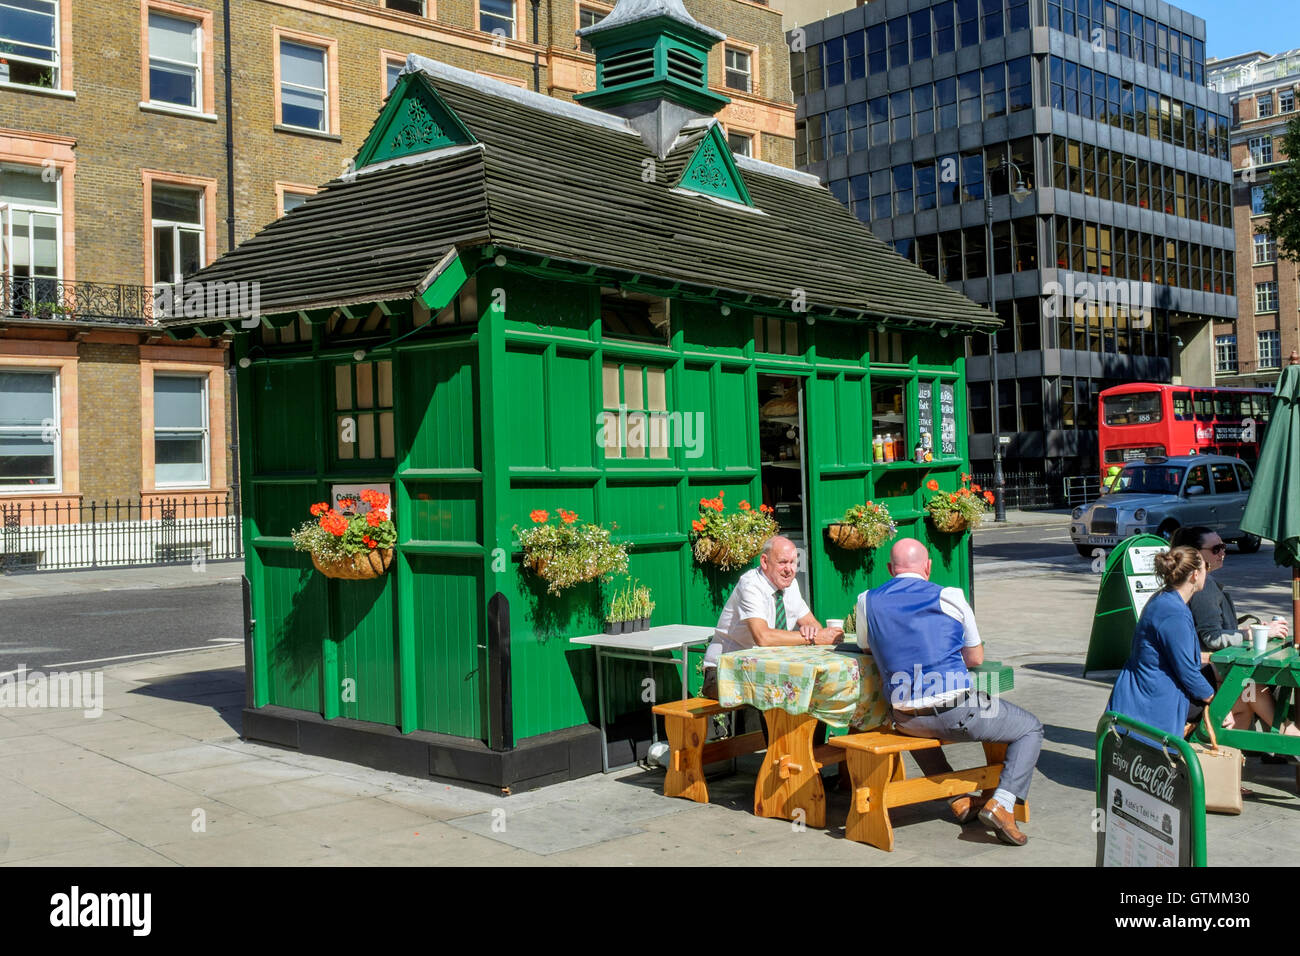 Former Taxi drivers' hut converted to cafe, Russell Square, Bloomsbury, London Stock Photo